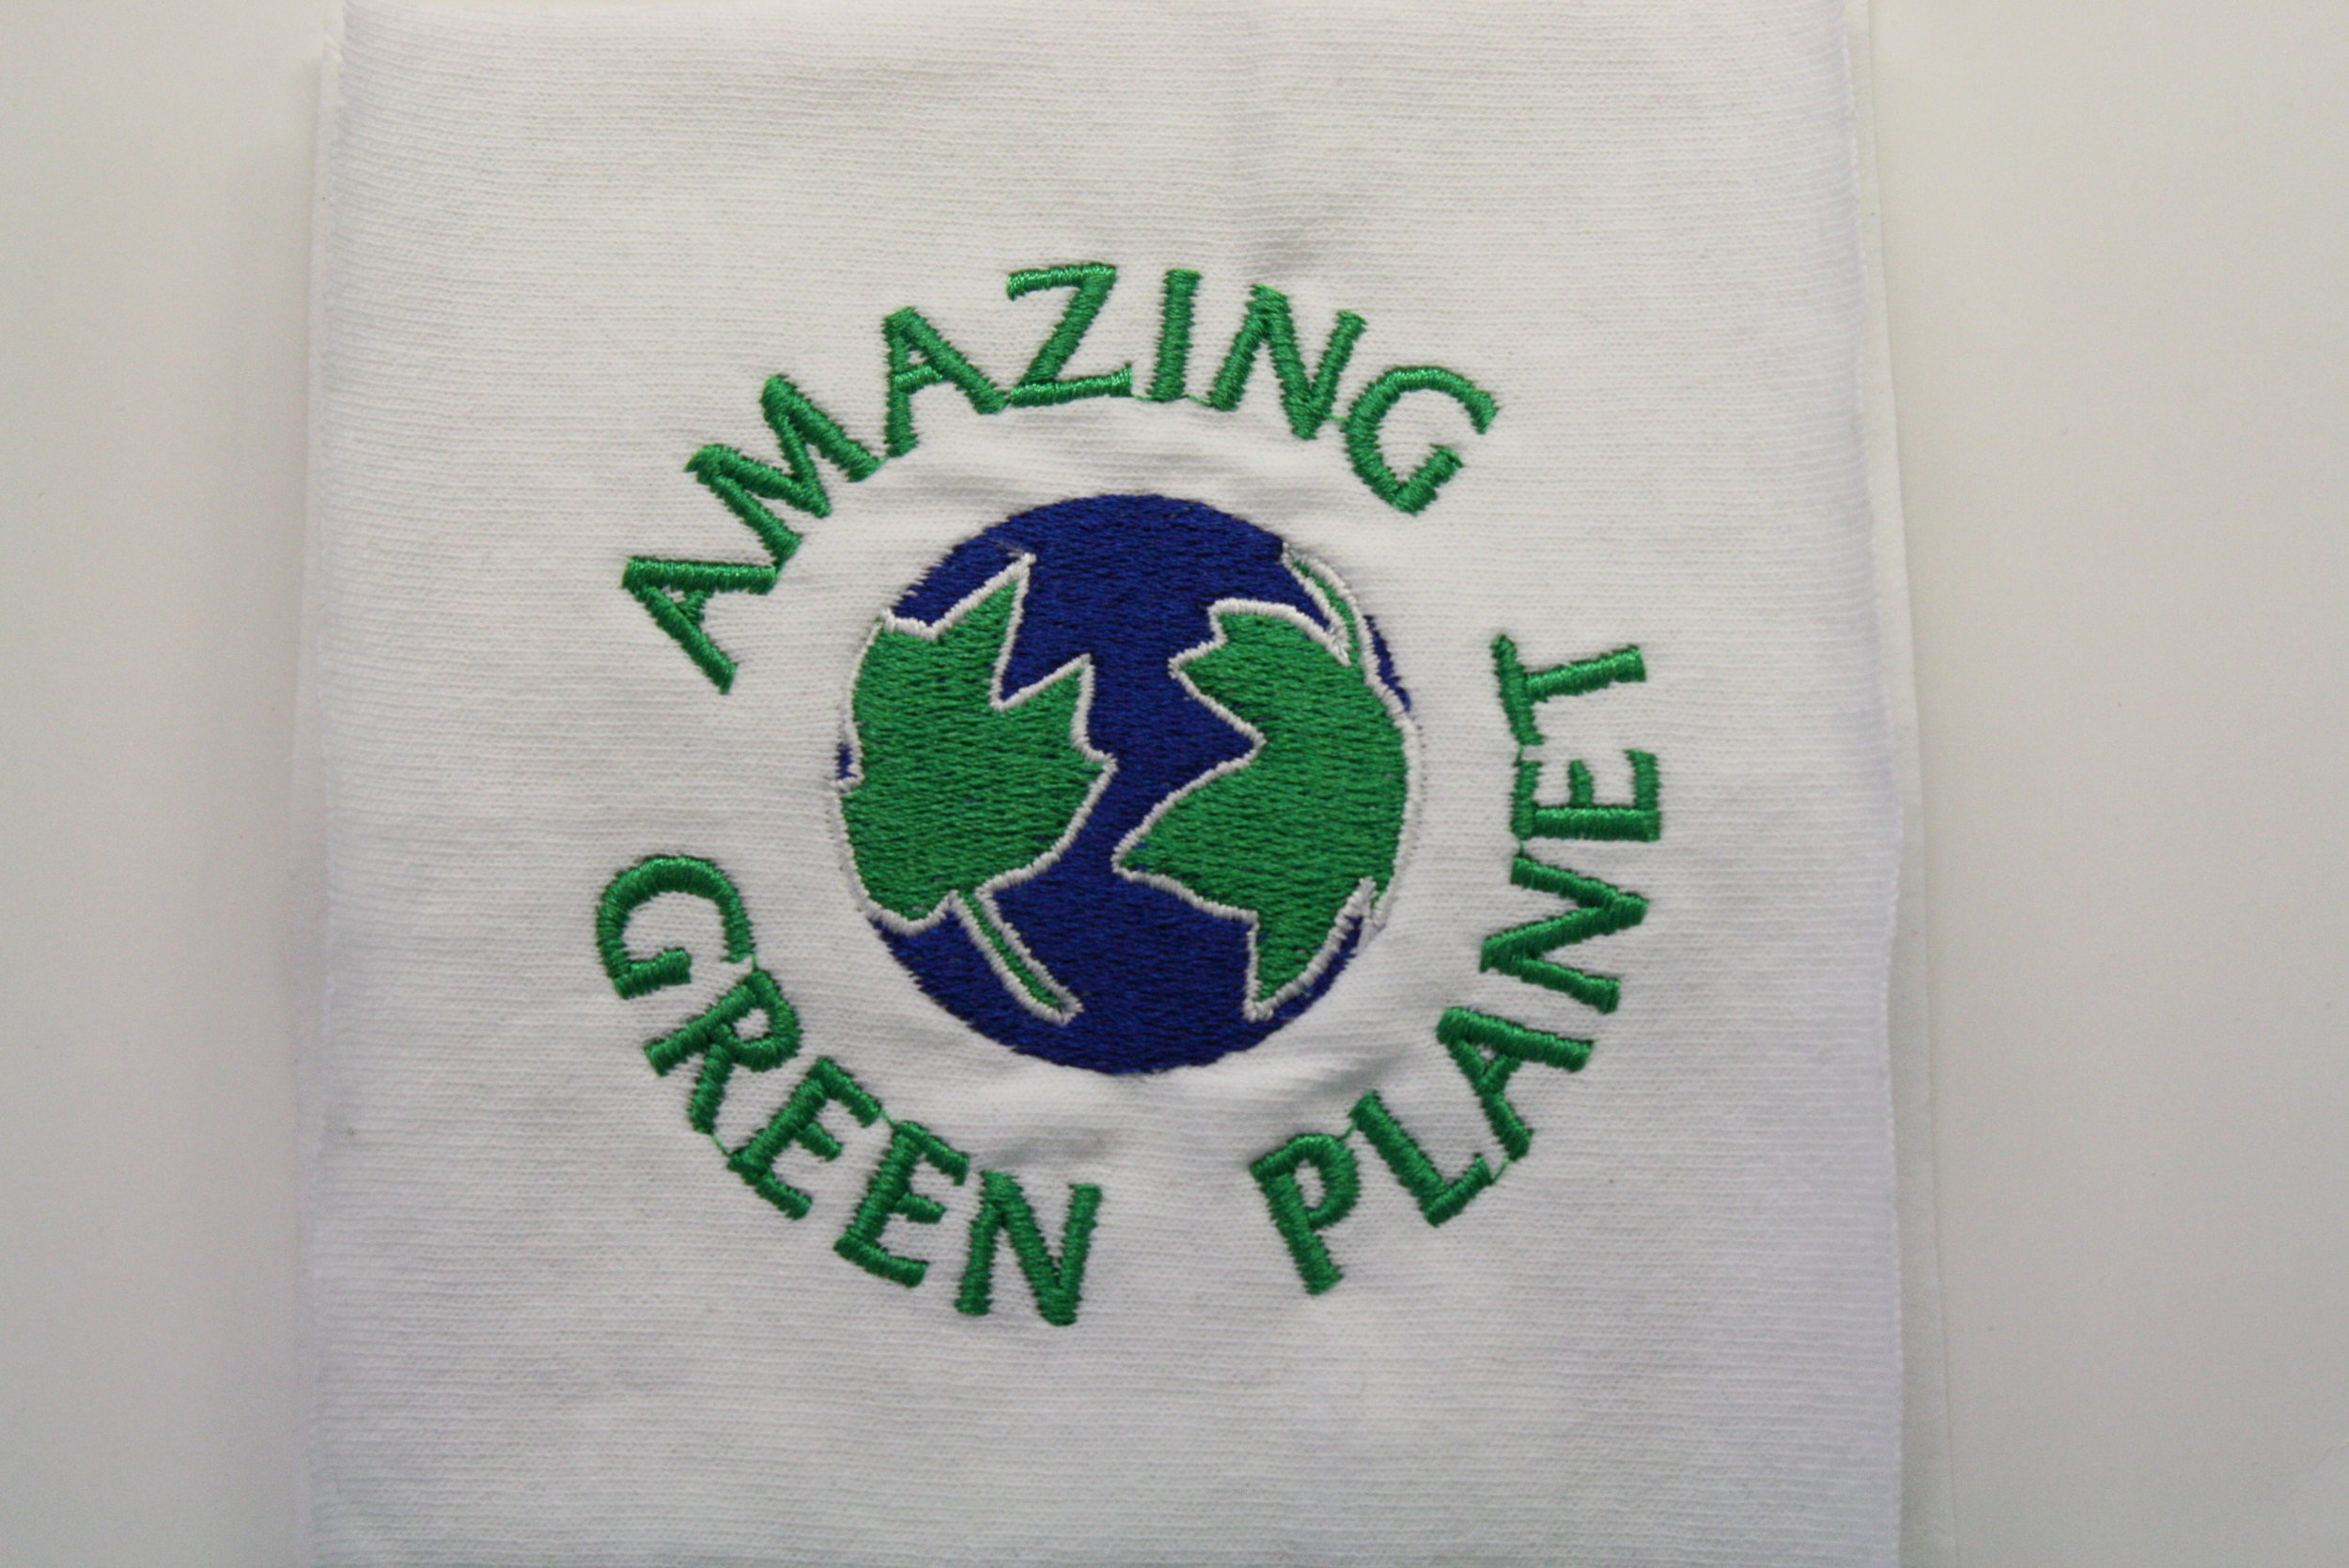 Design for client Amazing Green Planet's logo.